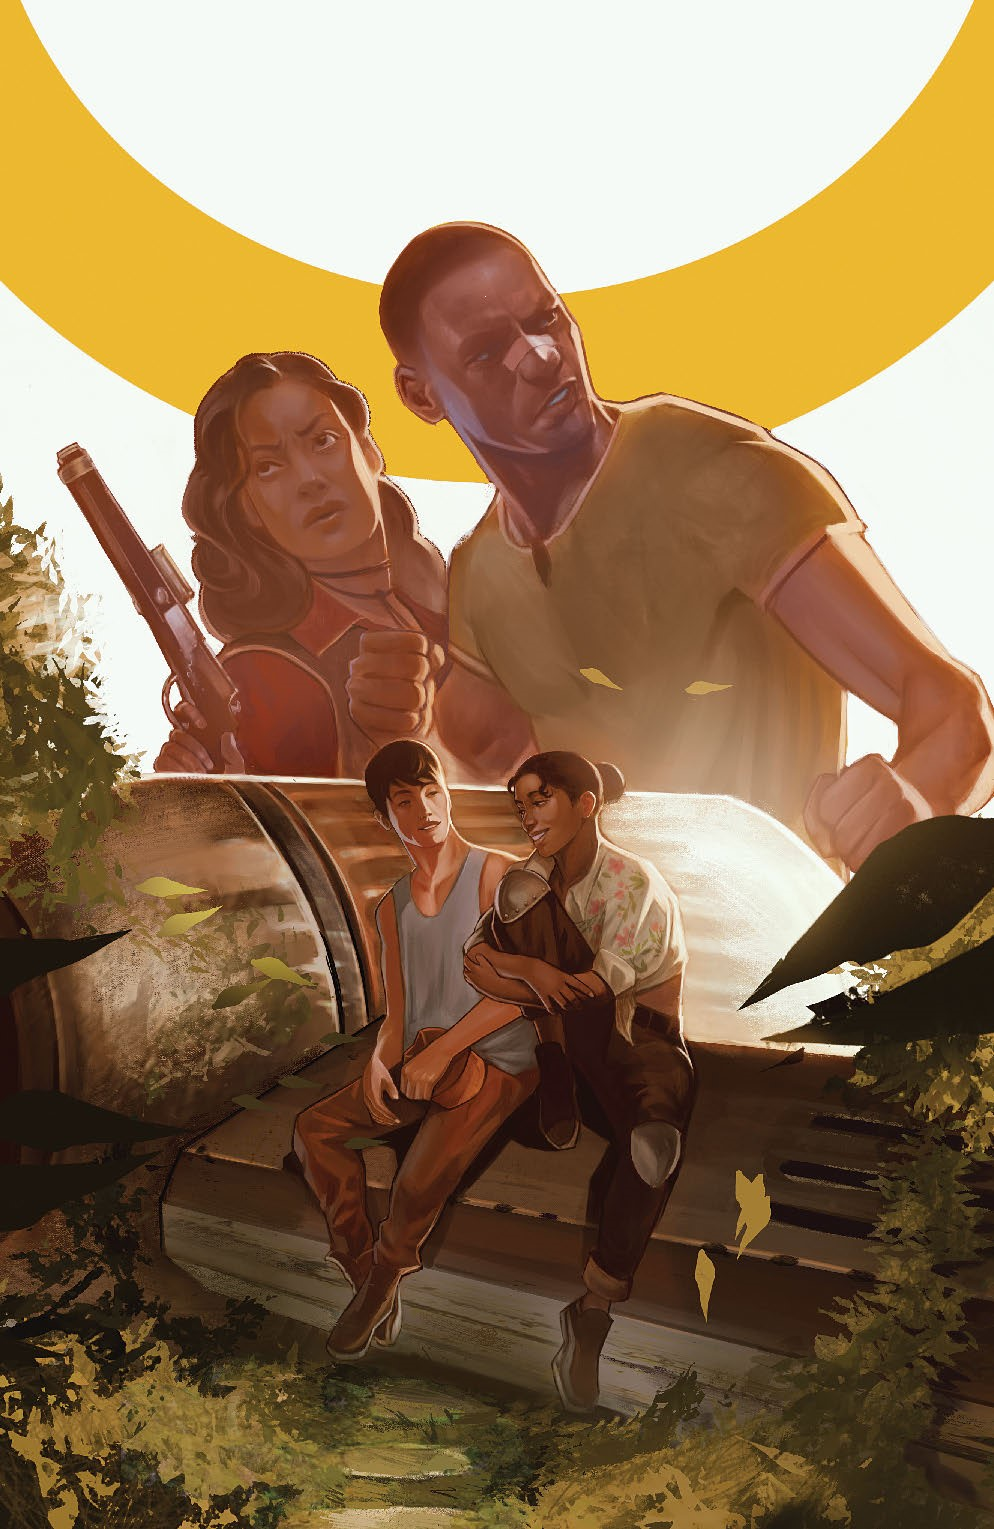 Firefly_BrandNewVerse_006_Cover_E_Unlockable ComicList Previews: FIREFLY BRAND NEW 'VERSE #6 (OF 6)